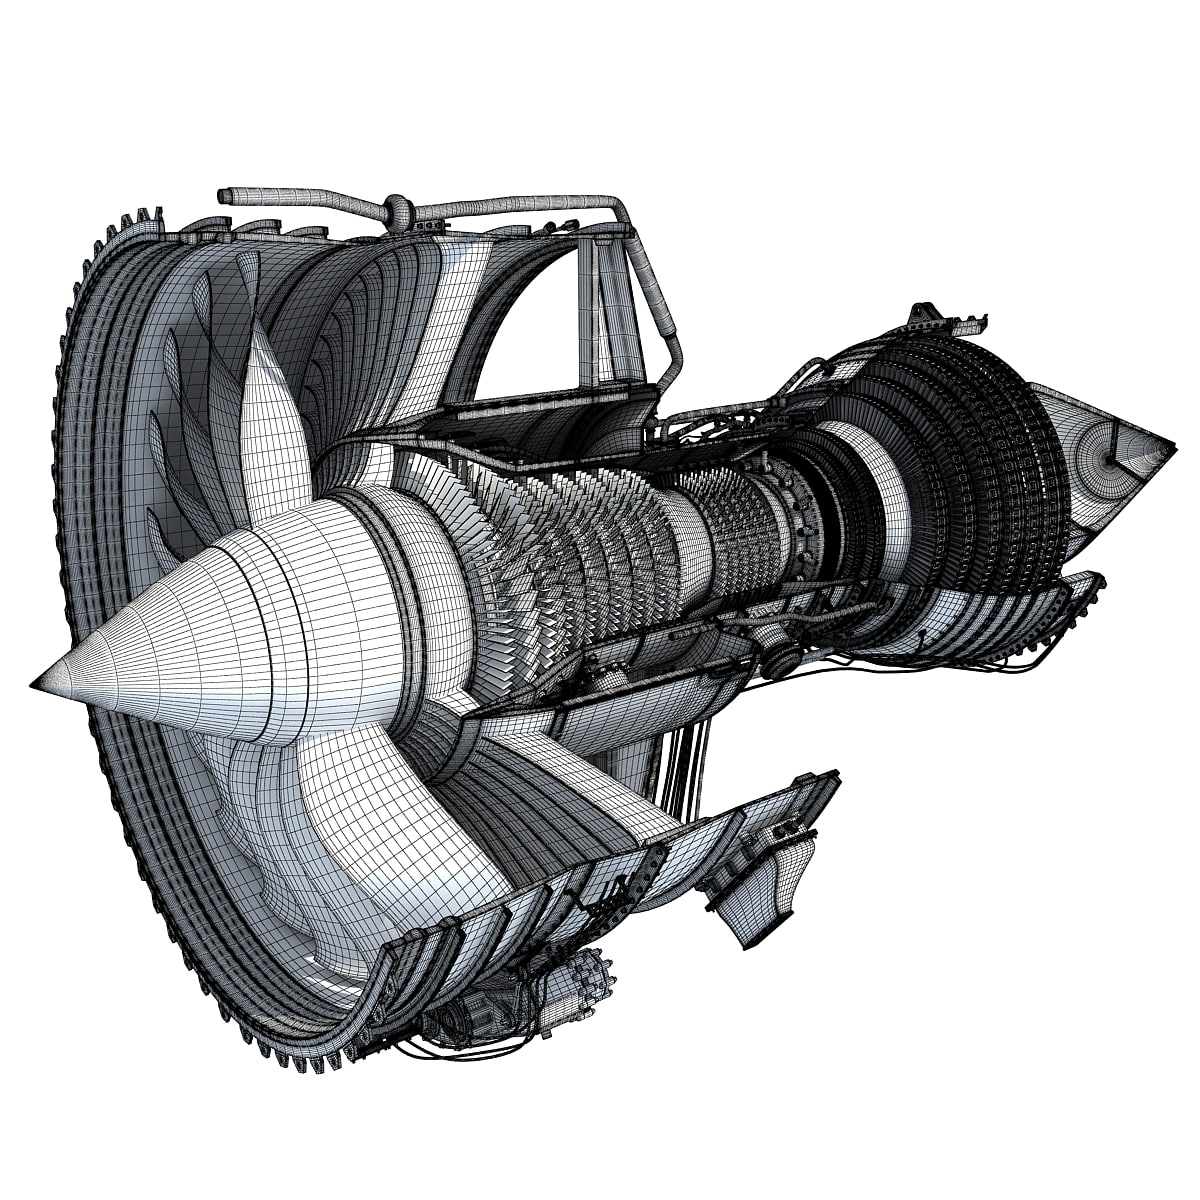 3D Model Sectioned Turbojet Engines